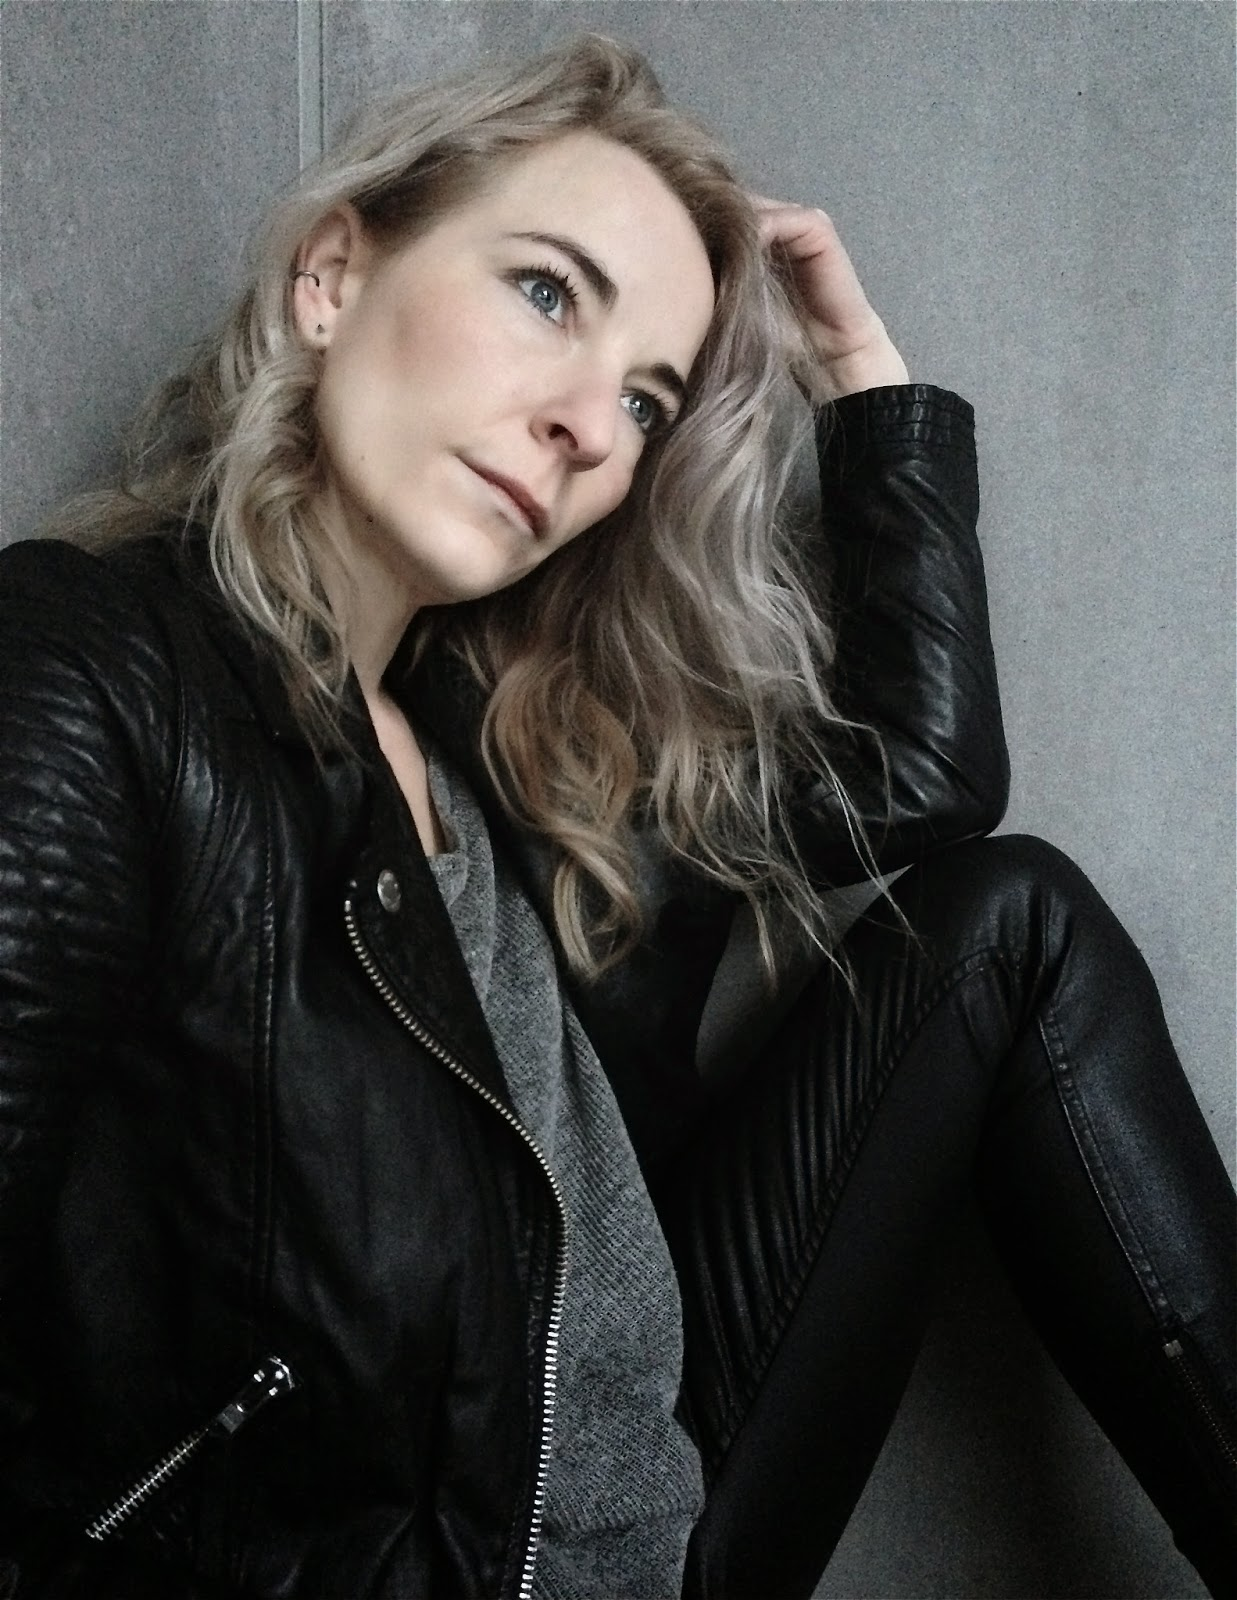 Curls, Twist & Tango Colbie Leather jacket, BLK DNM jeans 4 platt black, Red Label jumper, Still With You earrings, Leatherlook, Bikerchic